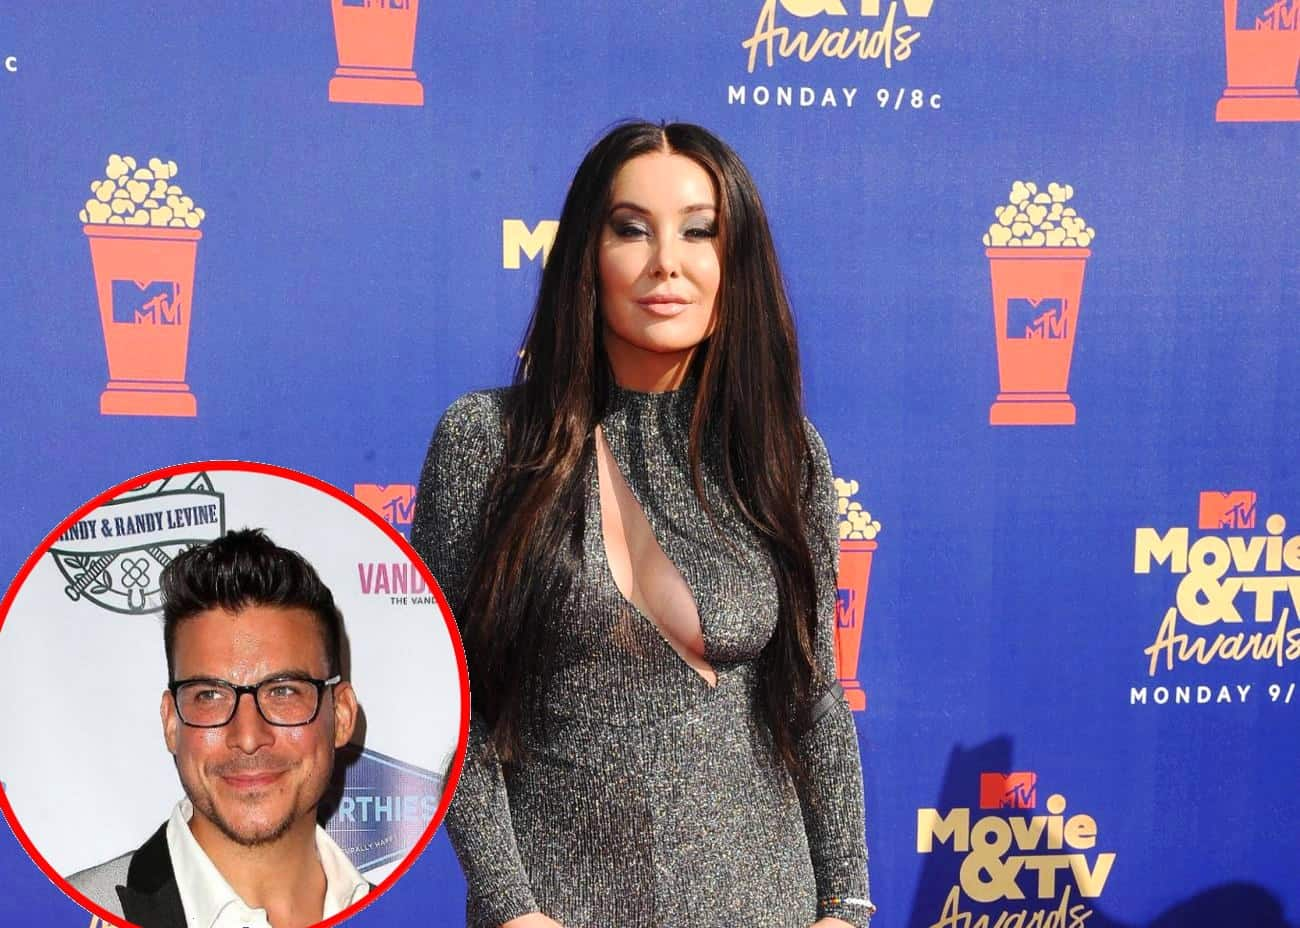 Did Billie Lee Quit Vanderpump Rules? She Shares Cryptic Post After Jax Taylor Claims She's No Longer Filming Show or Working at SUR